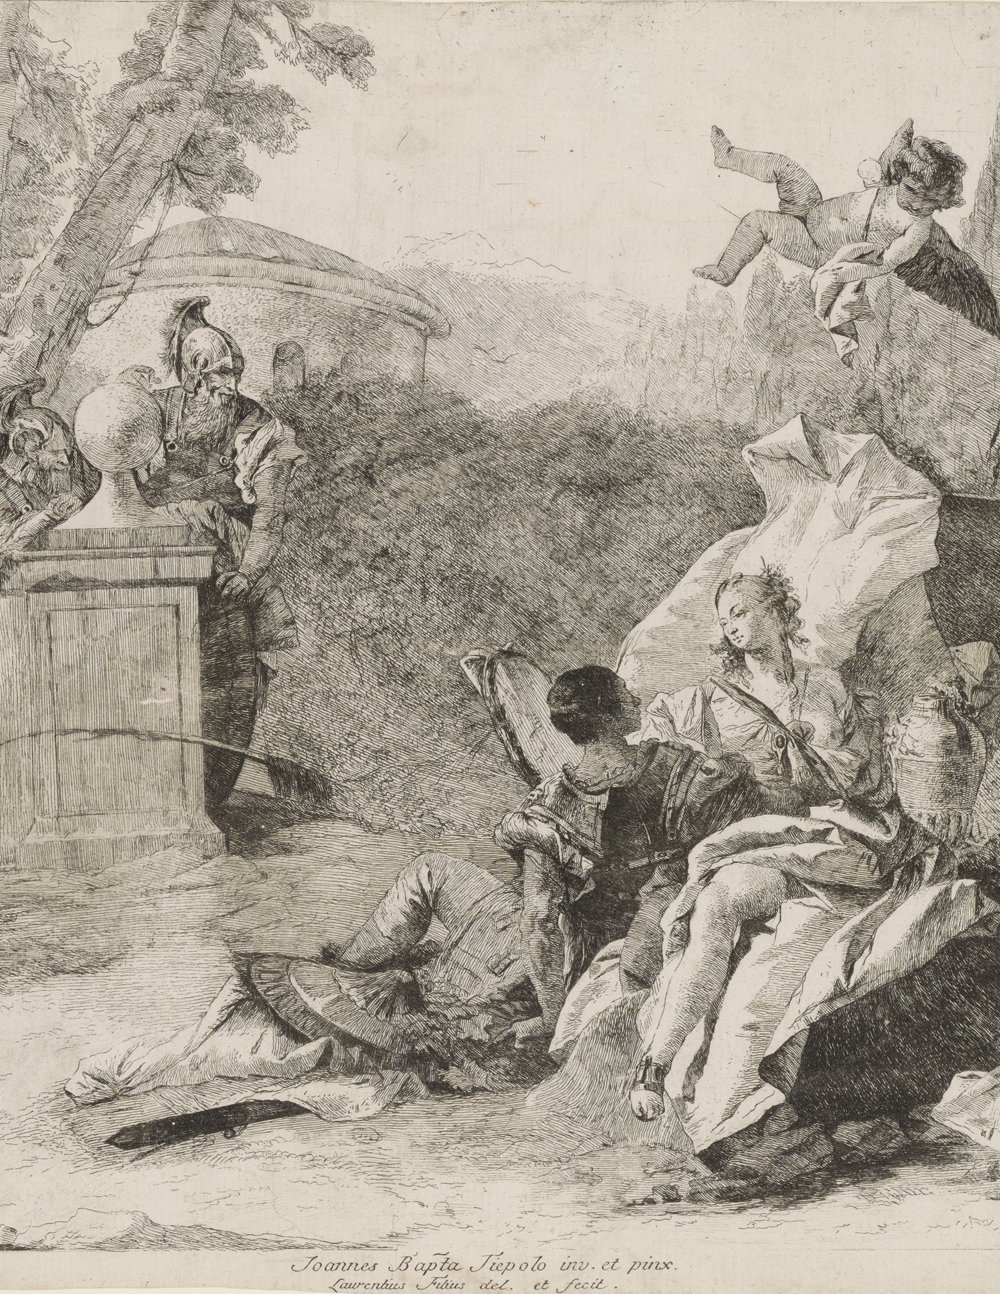 Lorenzo Tiepolo after Giovanni Battista Tiepolo, Rinaldo and Armida (etching ca 1758). Courtesy of the Yale University Art Gallery. Appears: Writing